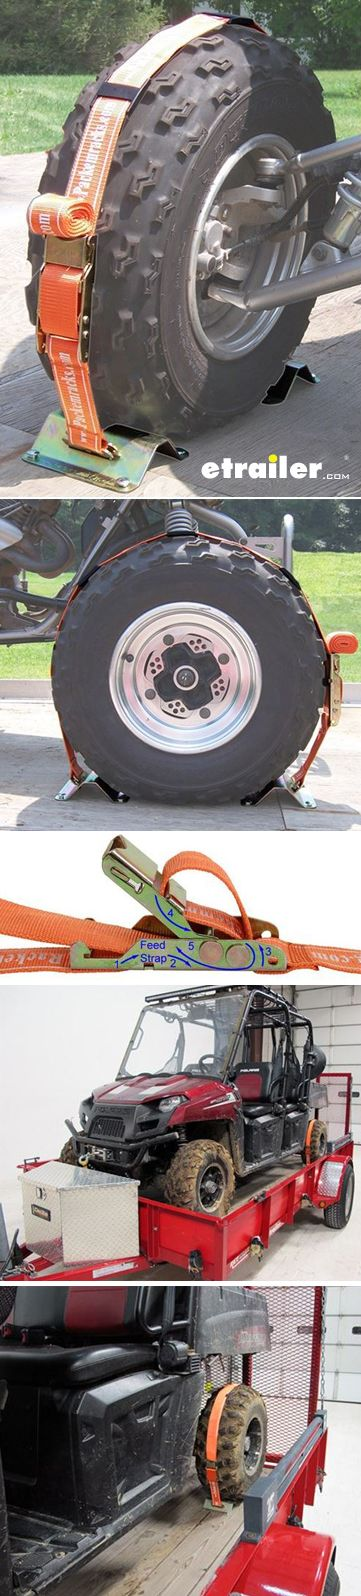 Pack'em Wheel TieDown Kit for Truck Beds and Trailers